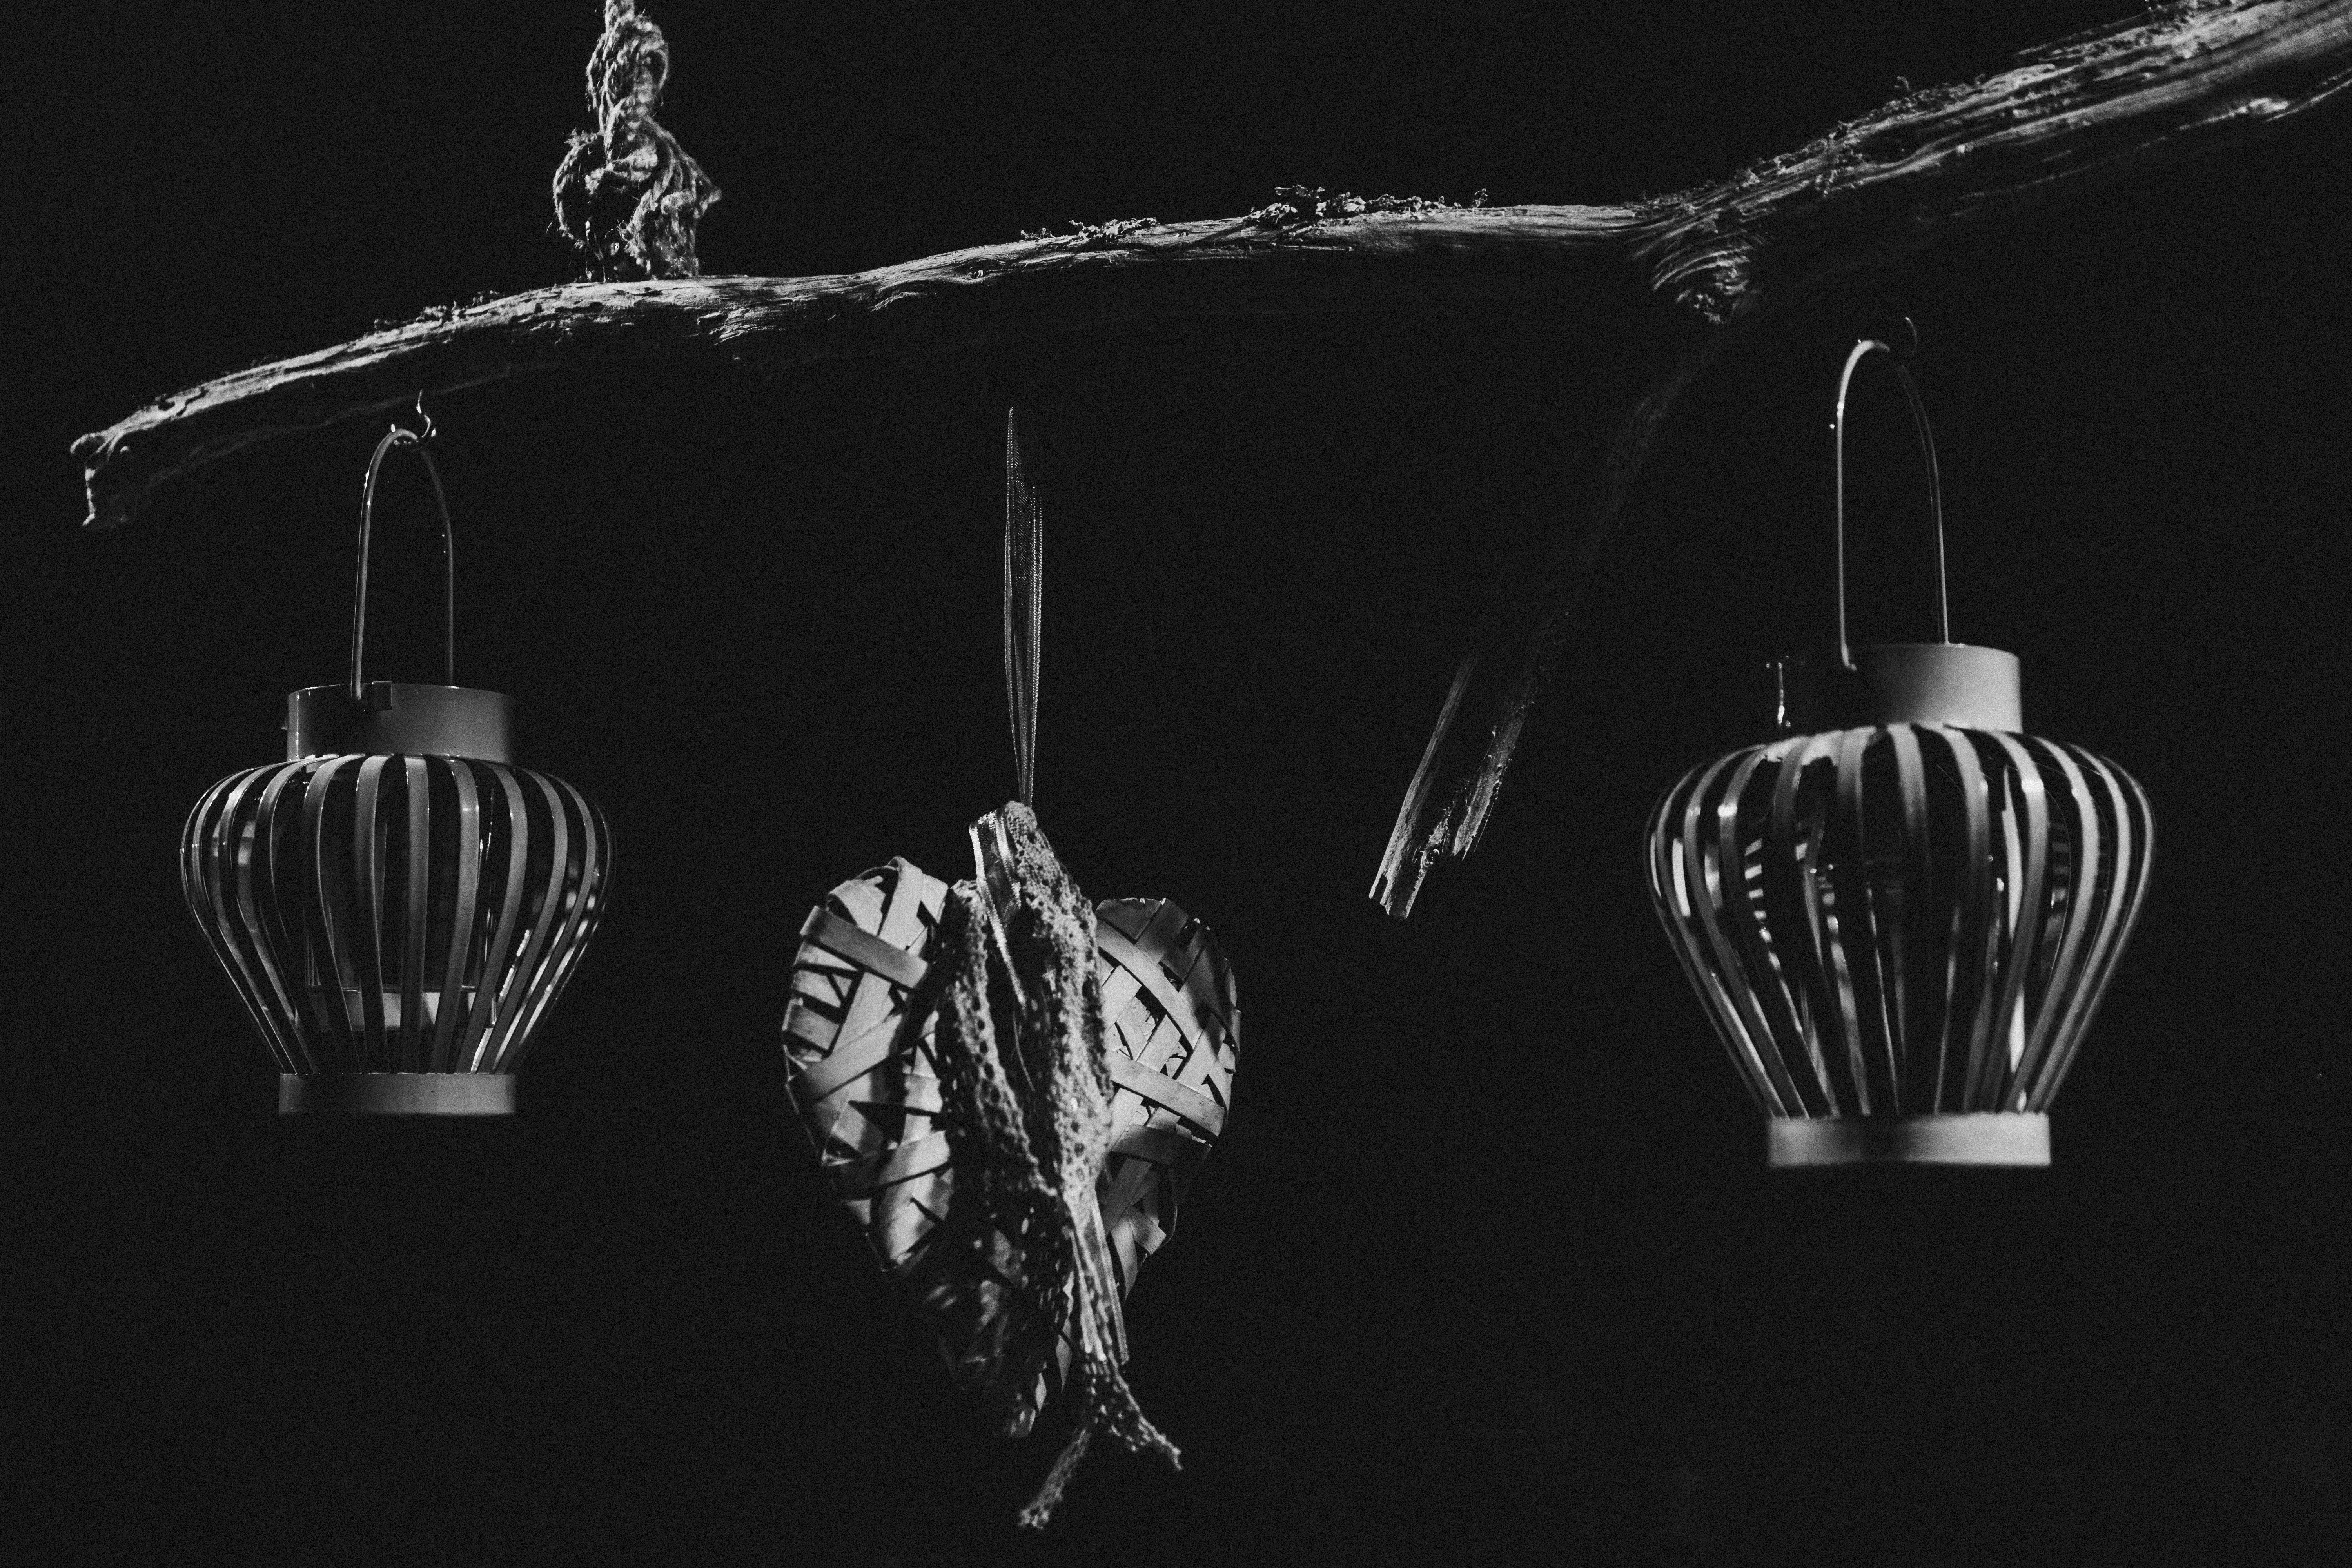 Black and White Photo of Hanging Objects